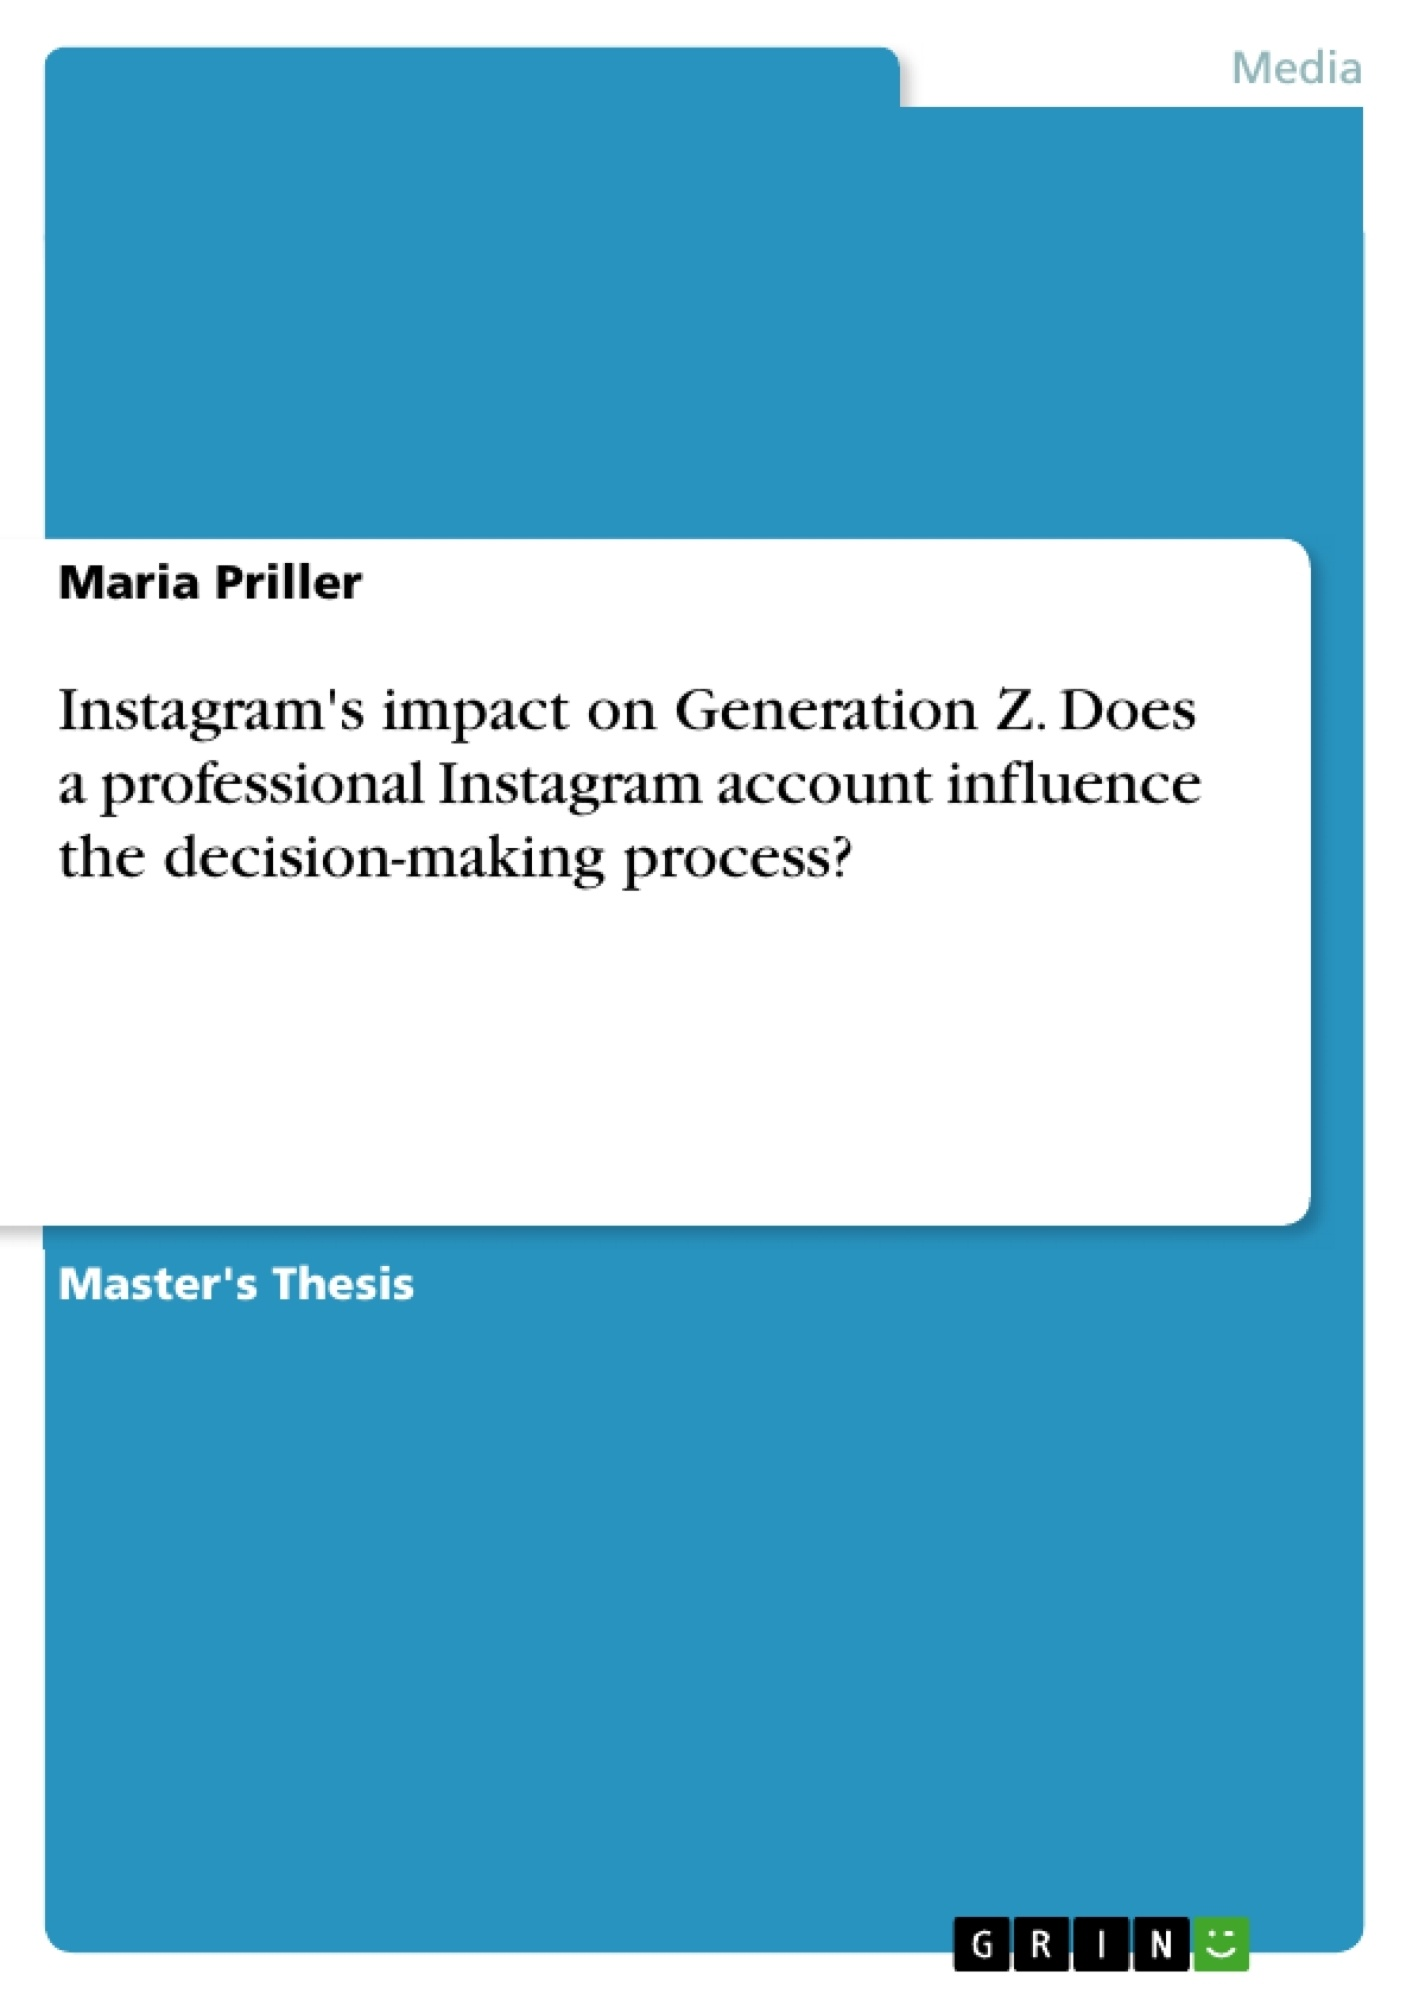 Title: Instagram's impact on Generation Z. Does a professional Instagram account influence the decision-making process?